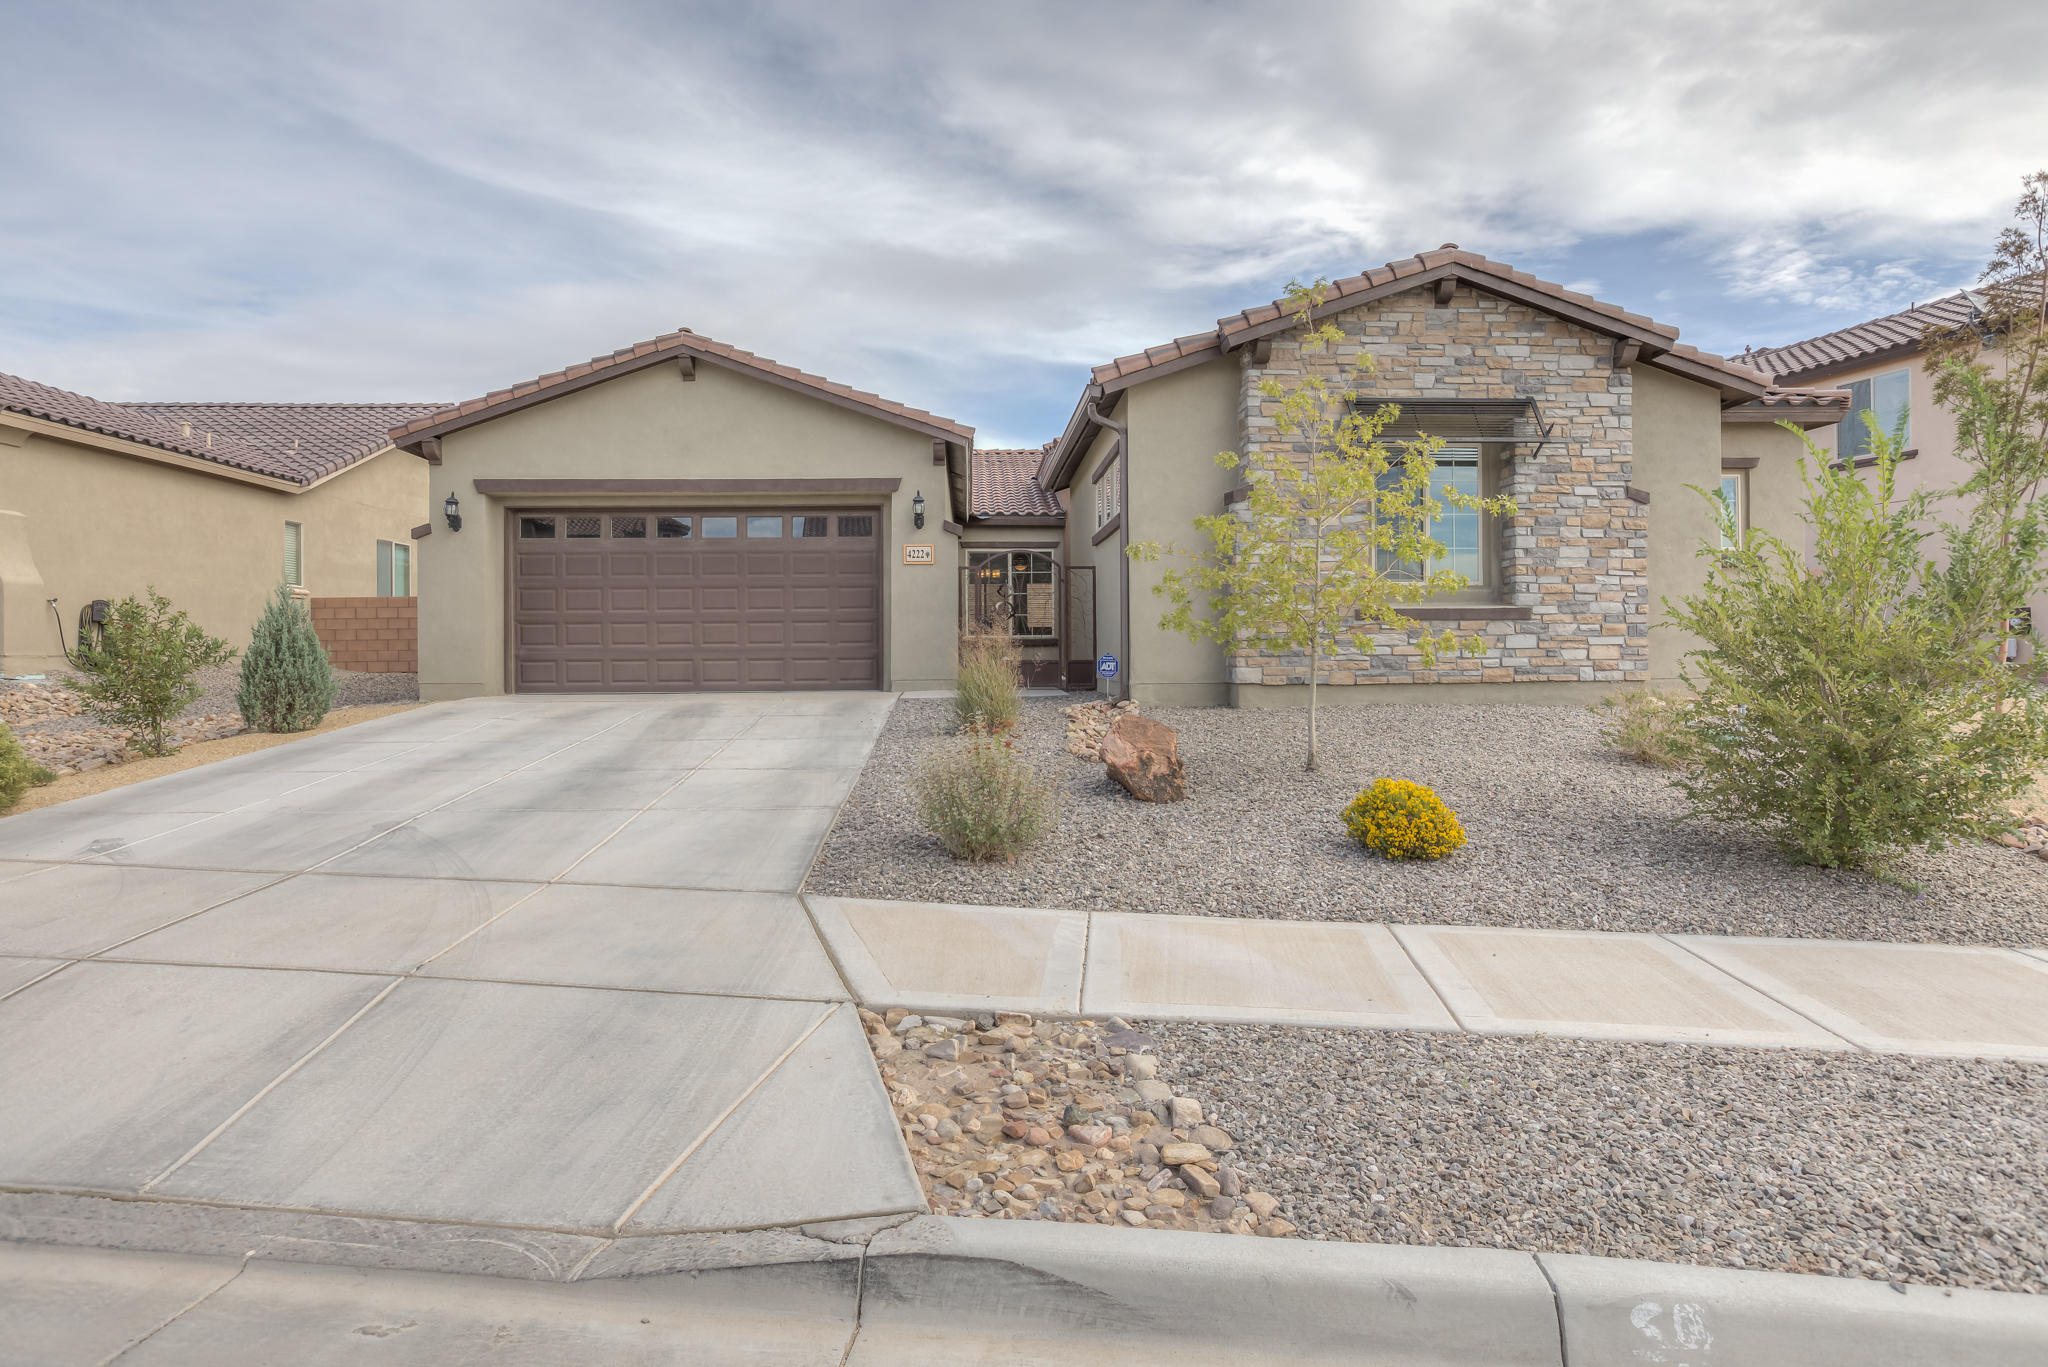 4222 Pico Norte Lane, Rio Rancho NM 87124